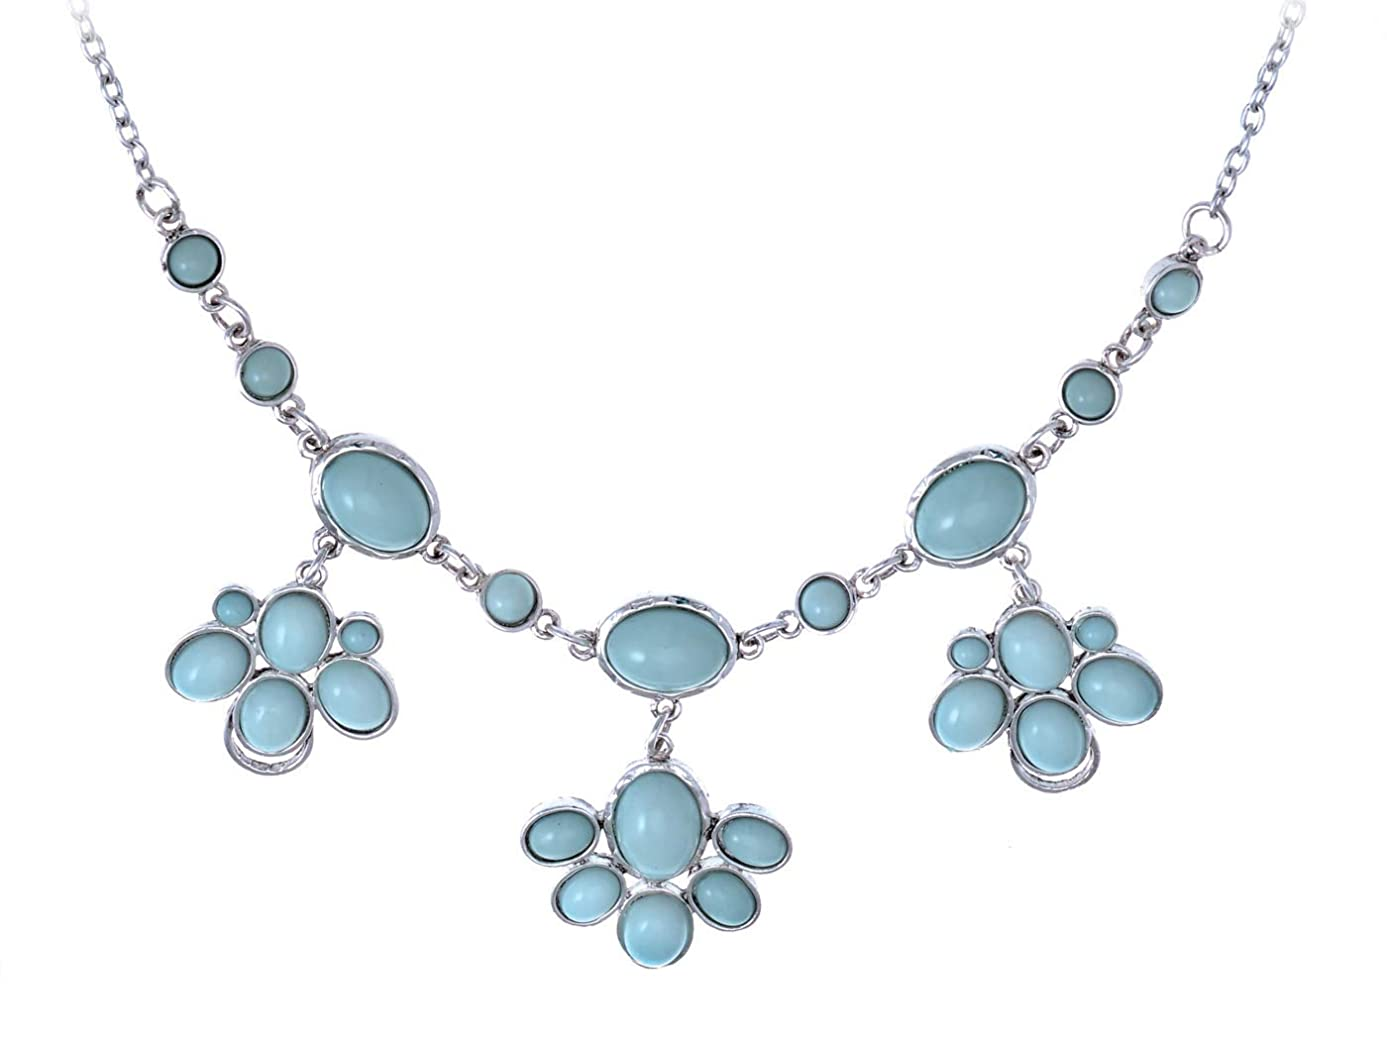 Alilang Sea-Foam Pastel Green Floral Flower Costume Ethnic Necklace